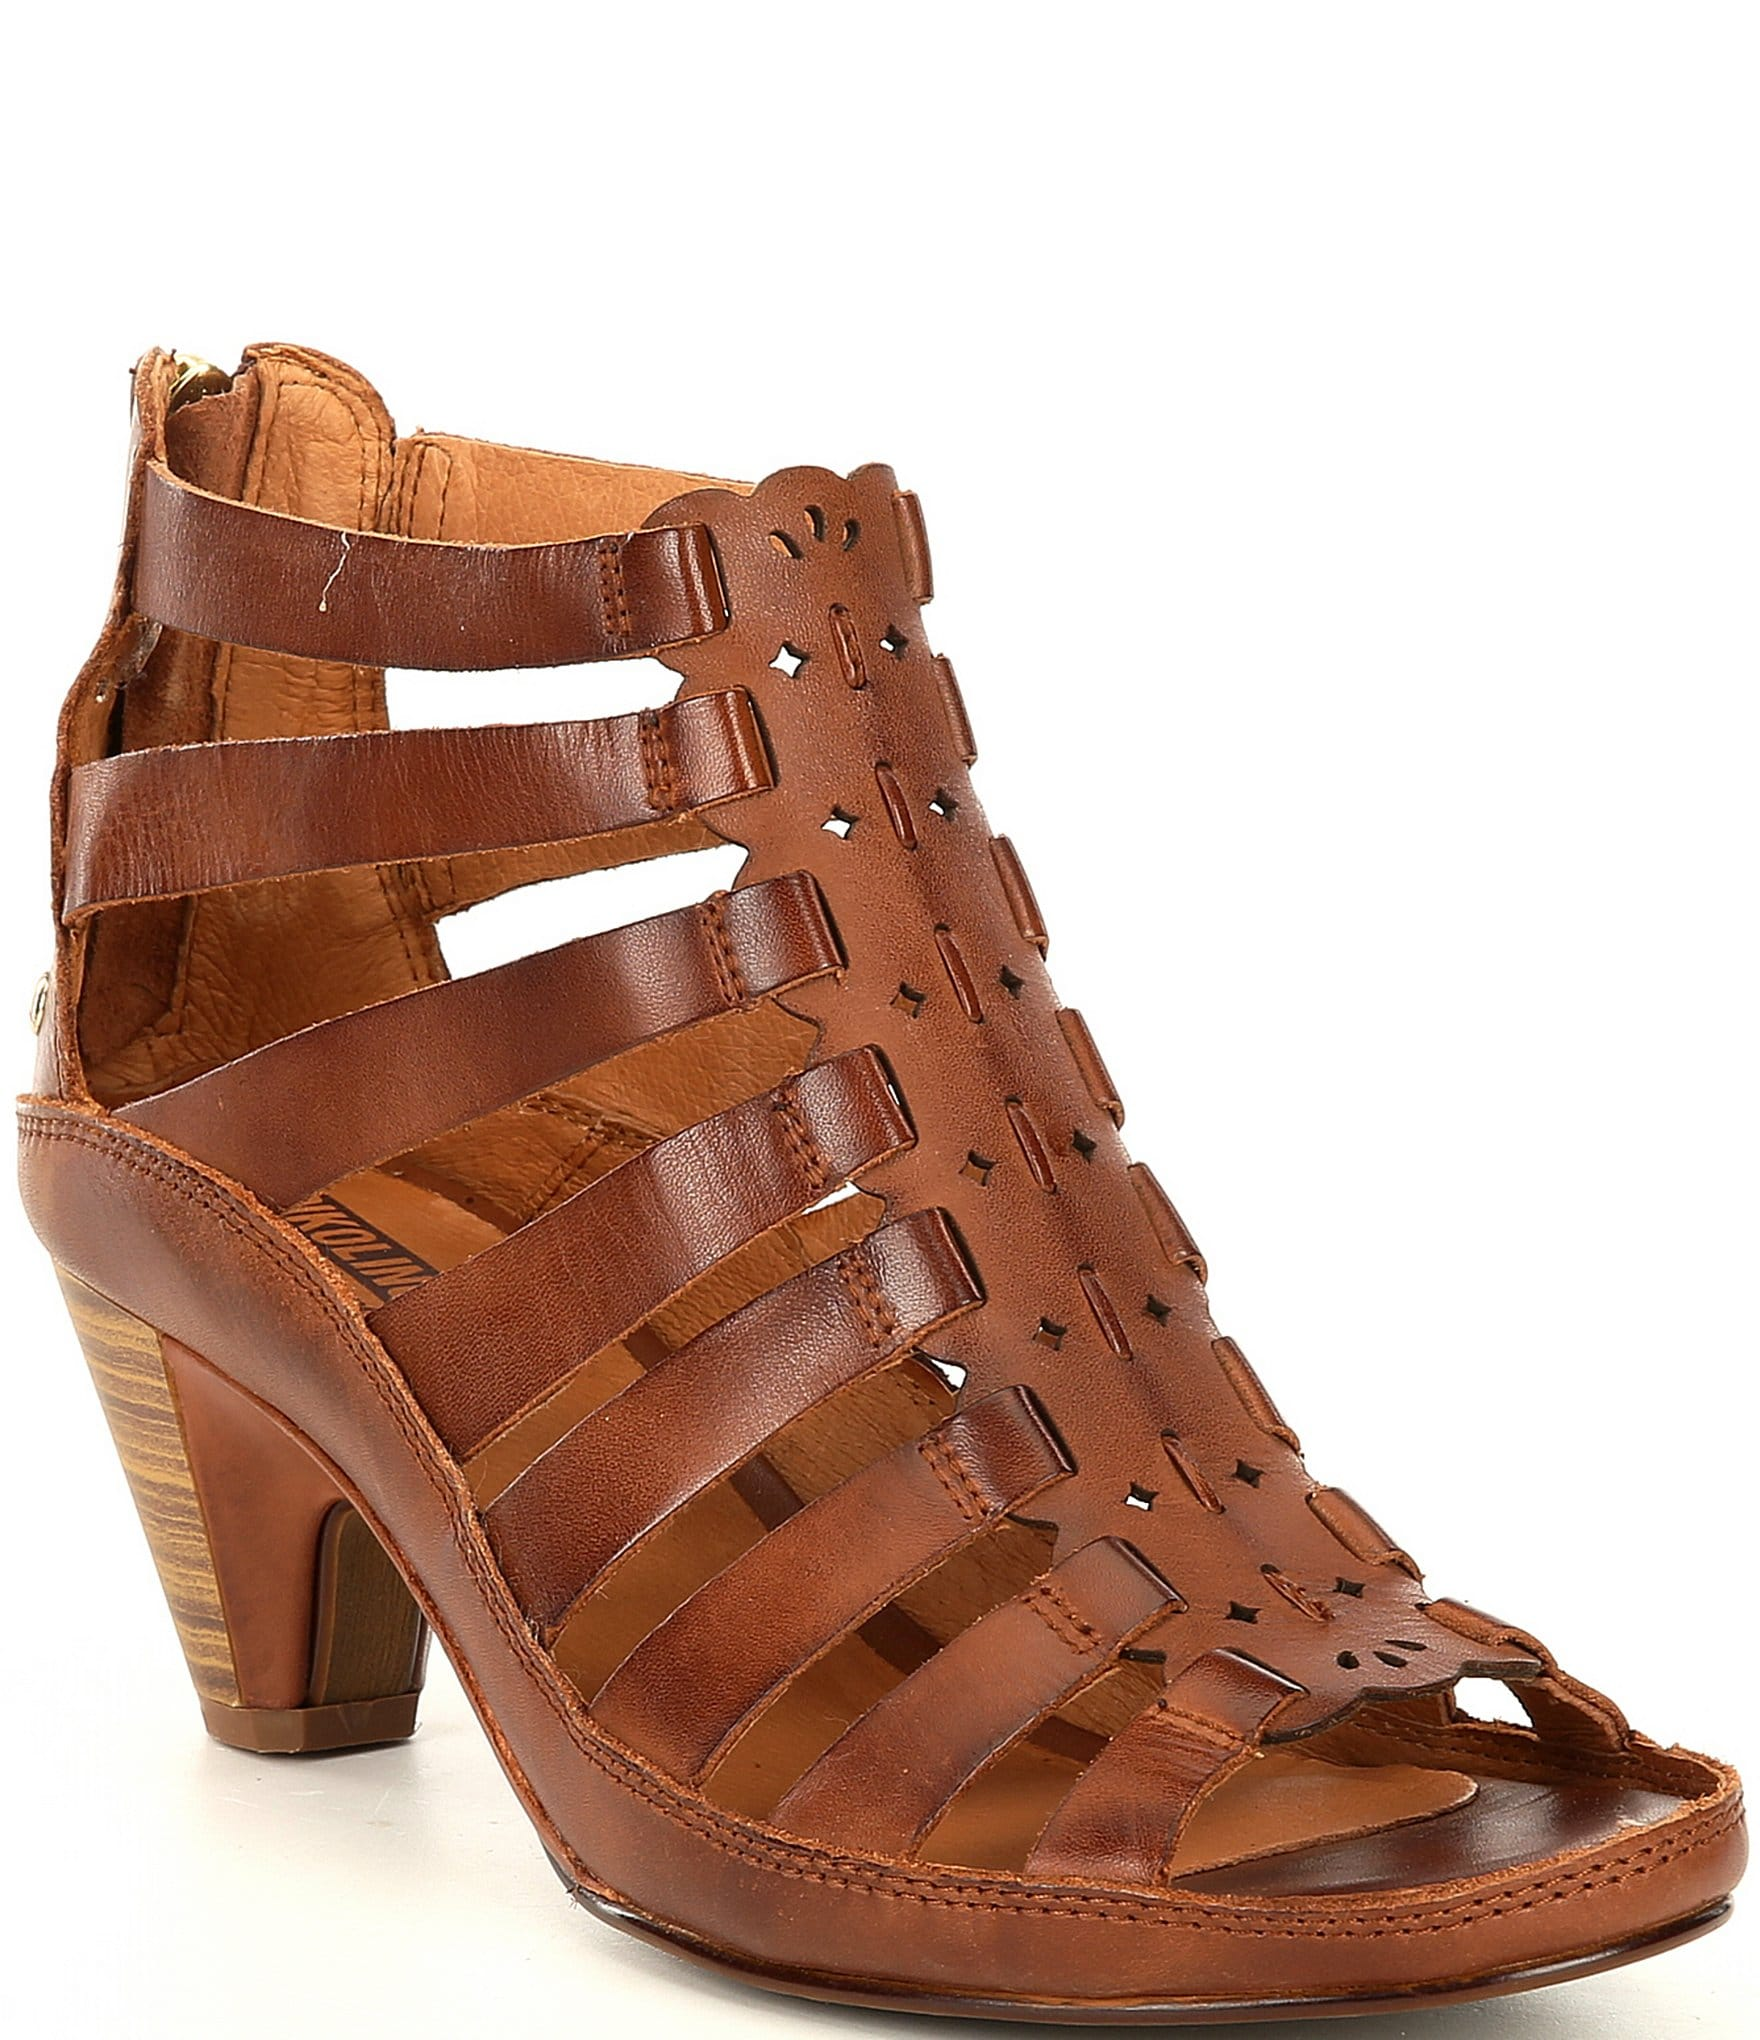 Pikolinos Java Leather Dress Sandals